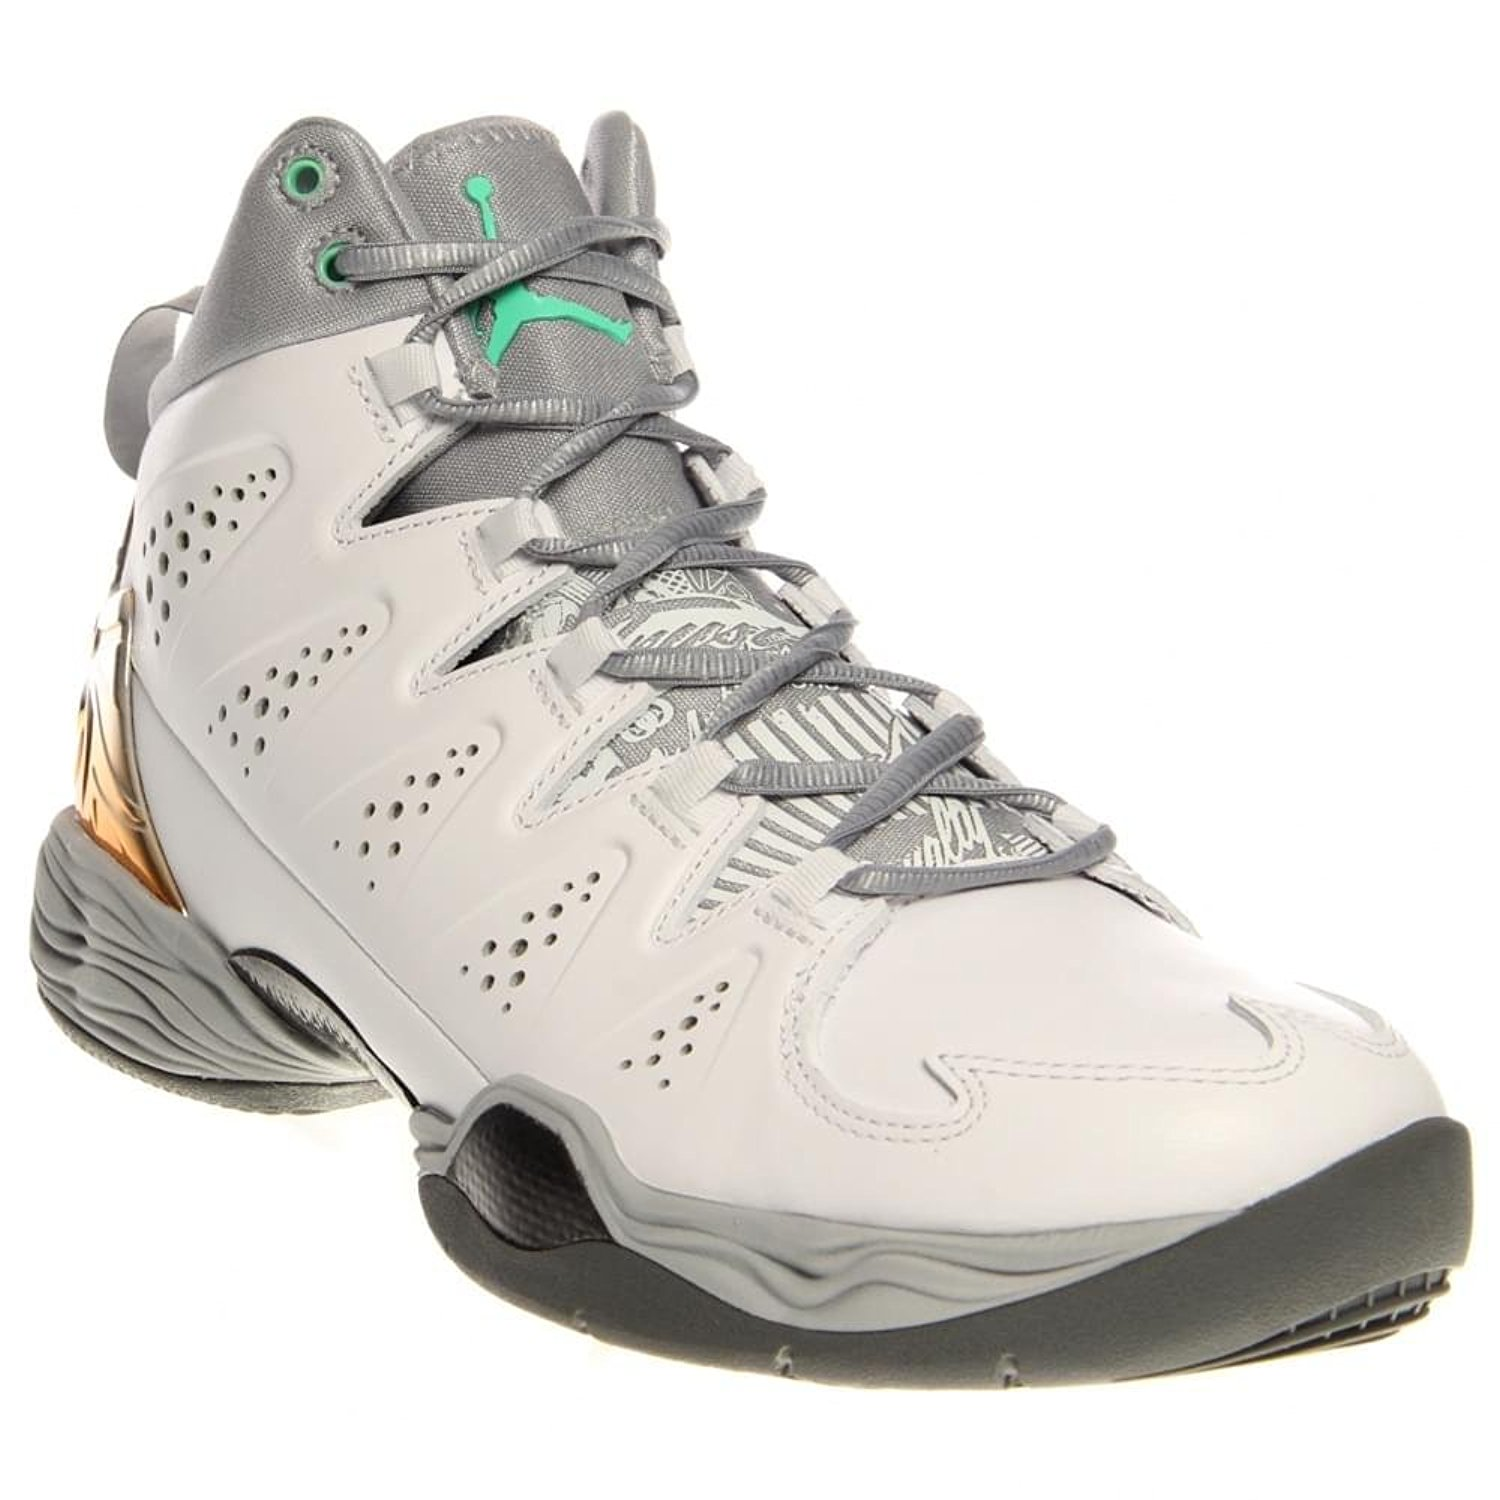 483d055a354a40 Buy Authentic NIKE AIR JORDAN MELO M10 Anthony basketball shoes ...